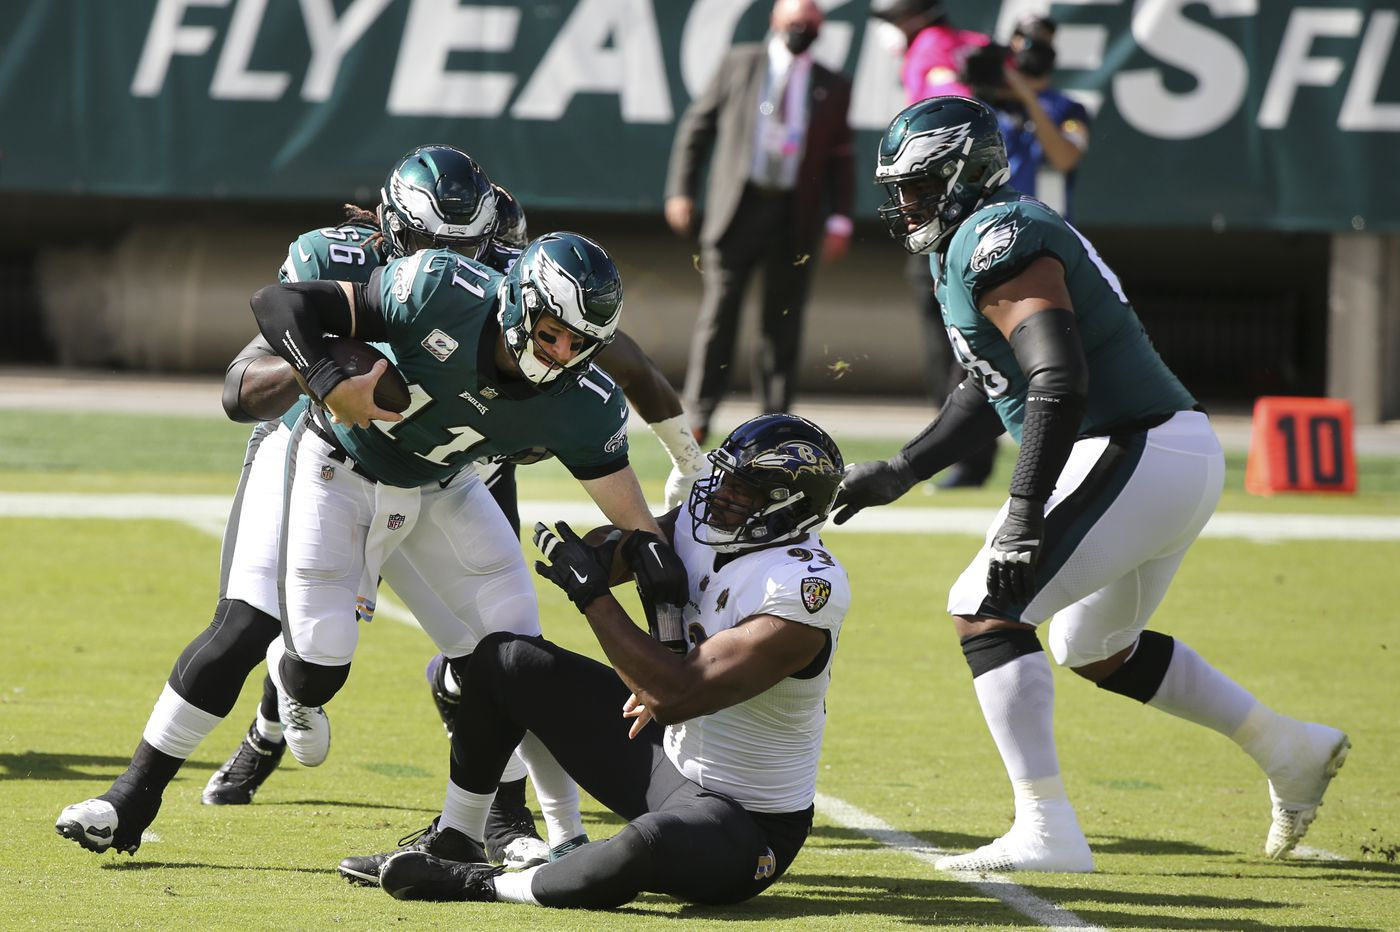 Eagles' offensive line, patched together with backups, finally collapses against Ravens